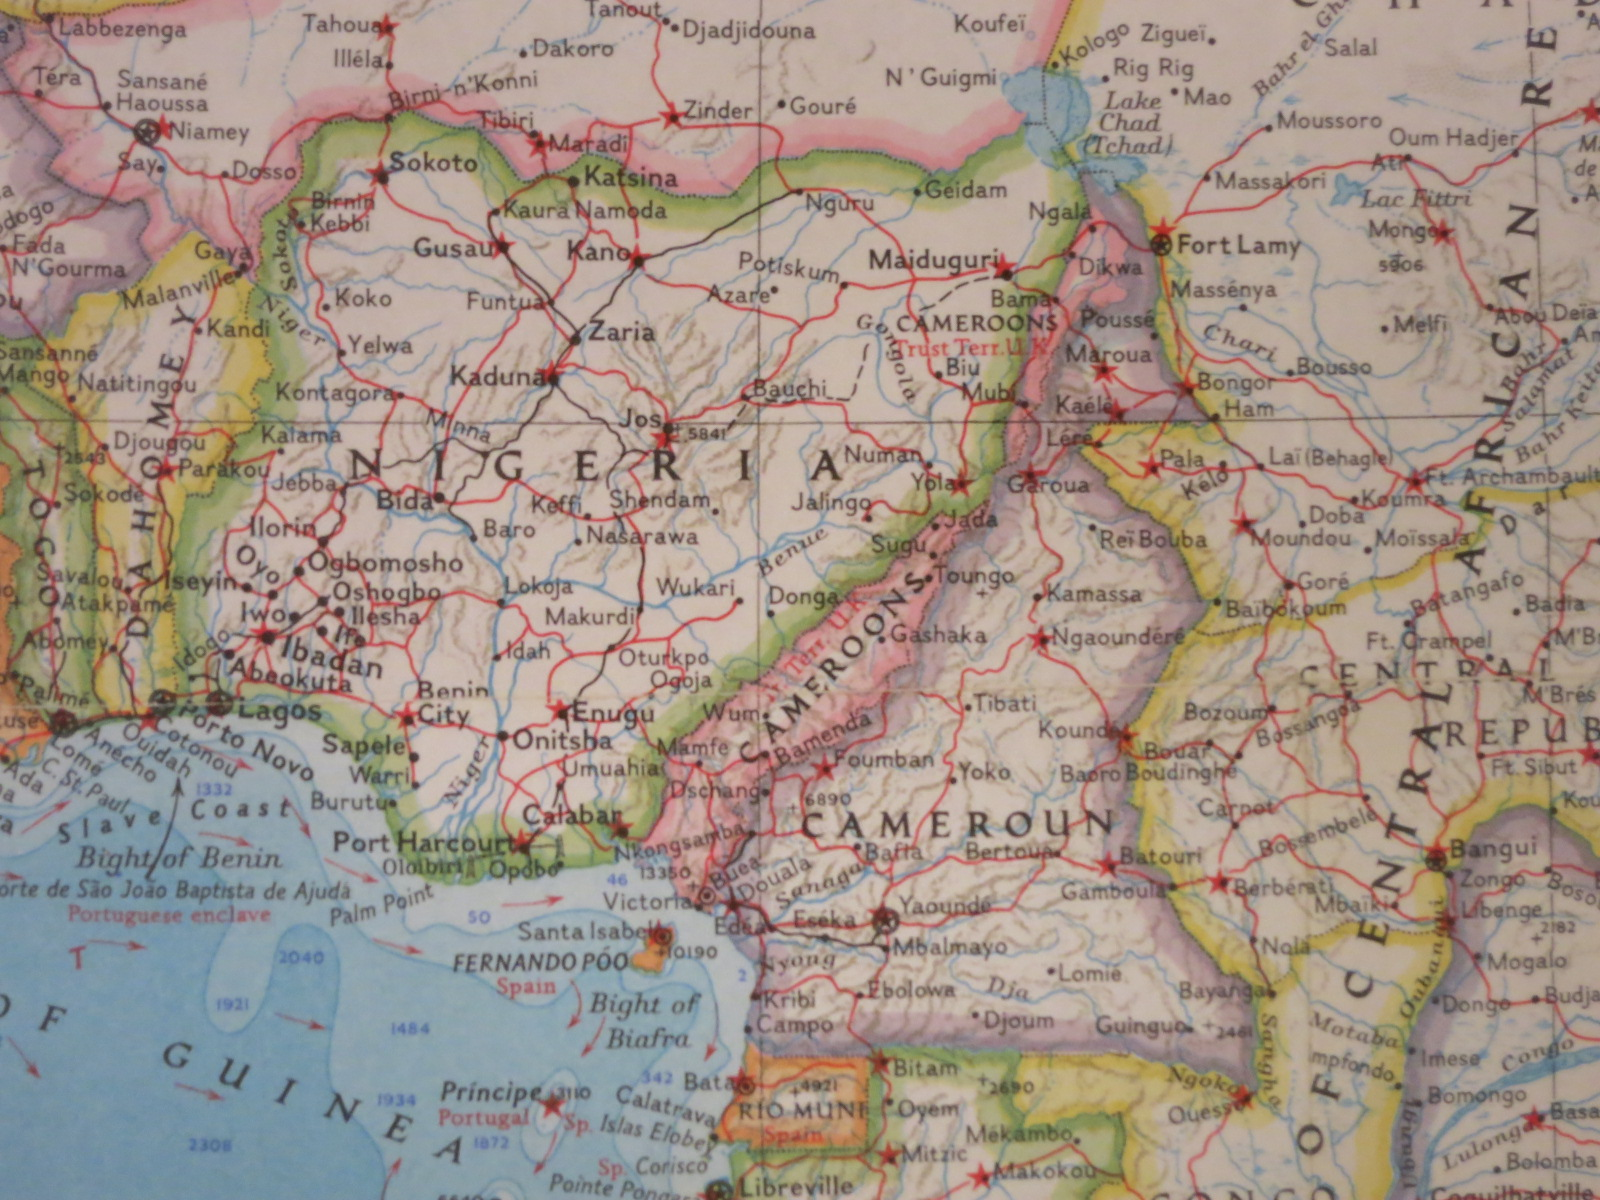 Nigeria cameroons and cameroun 1960 map library university of nigeria cameroons and cameroun 1960 gumiabroncs Gallery